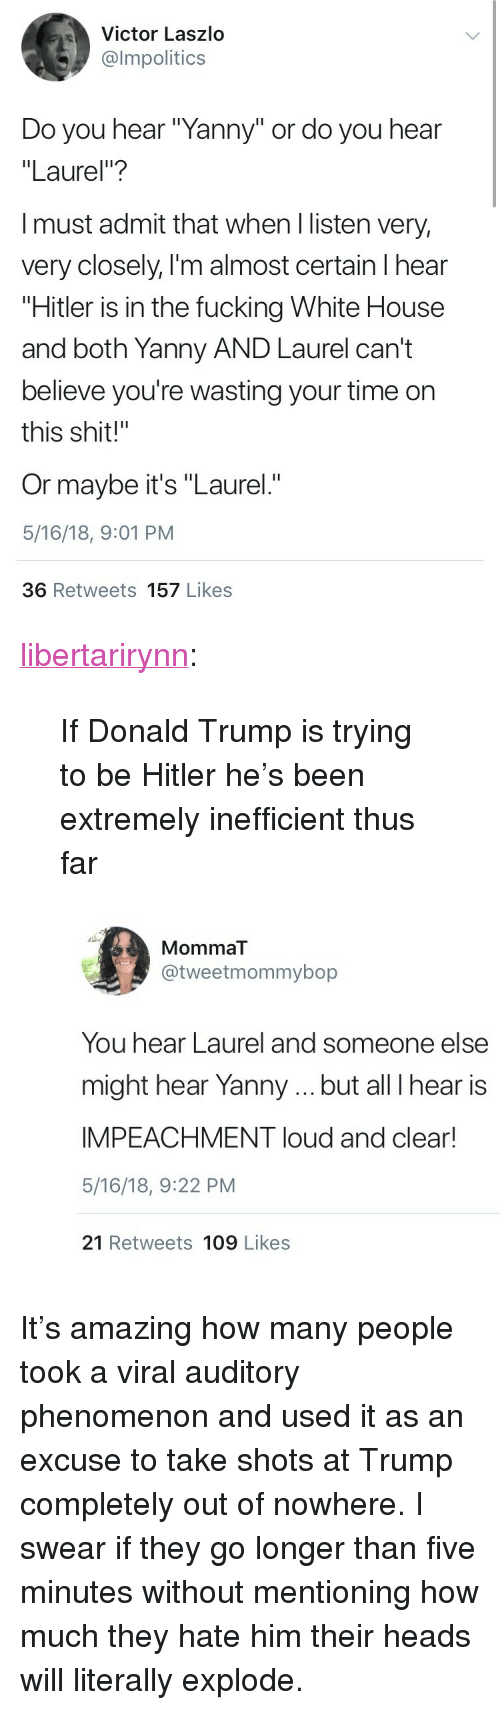 """Donald Trump, Fucking, and Shit: Victor Laszlo  @lmpolitics  Do you hear """"Yanny"""" or do you hear  """"Laurel""""?  I must admit that when l listen very,  very closely, l'm almost certain l hear  """"Hitler is in the fucking White House  and both Yanny AND Laurel can't  believe you're wasting your time on  this shit!""""  Or maybe it's """"Laurel.""""  5/16/18, 9:01 PM  36 Retweets 157 Likes <p><a href=""""https://libertarirynn.tumblr.com/post/173975082539/if-donald-trump-is-trying-to-be-hitler-hes-been"""" class=""""tumblr_blog"""">libertarirynn</a>:</p>  <blockquote><p>If Donald Trump is trying to be Hitler he's been extremely inefficient thus far</p></blockquote>  <figure class=""""tmblr-full"""" data-orig-height=""""517"""" data-orig-width=""""750""""><img src=""""https://78.media.tumblr.com/7b793a5da1b33845c33185058982ffc0/tumblr_inline_p8uneyjdcq1rw09tq_500.jpg"""" data-orig-height=""""517"""" data-orig-width=""""750""""/></figure><p>It's amazing how many people took a viral auditory phenomenon and used it as an excuse to take shots at Trump completely out of nowhere. I swear if they go longer than five minutes without mentioning how much they hate him their heads will literally explode.</p>"""